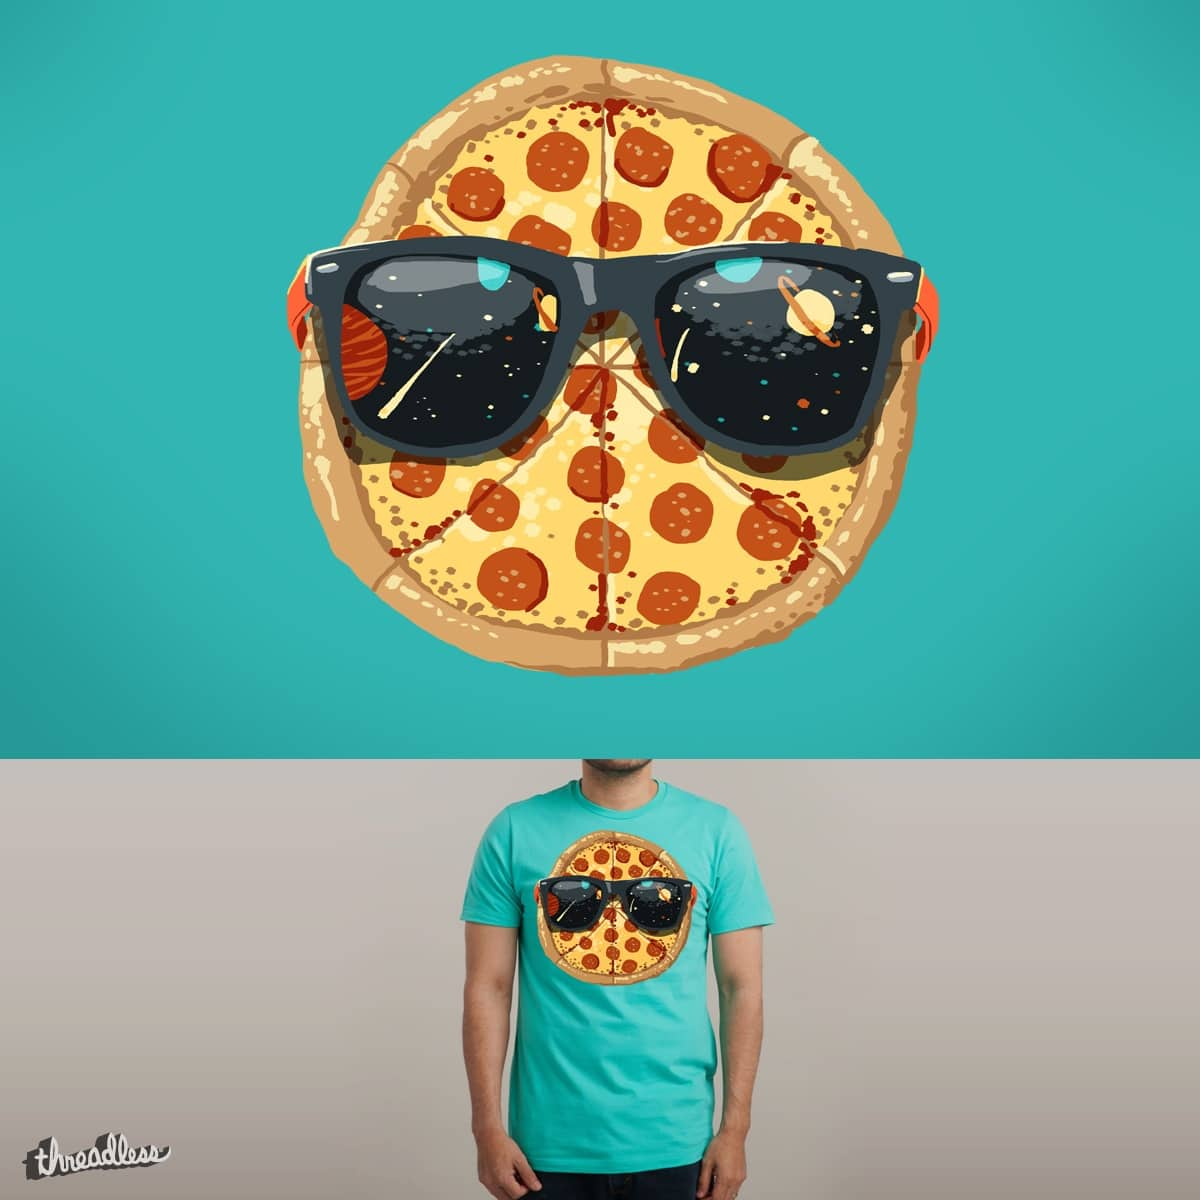 Cool Pizza (in Space) by fightstacy on Threadless